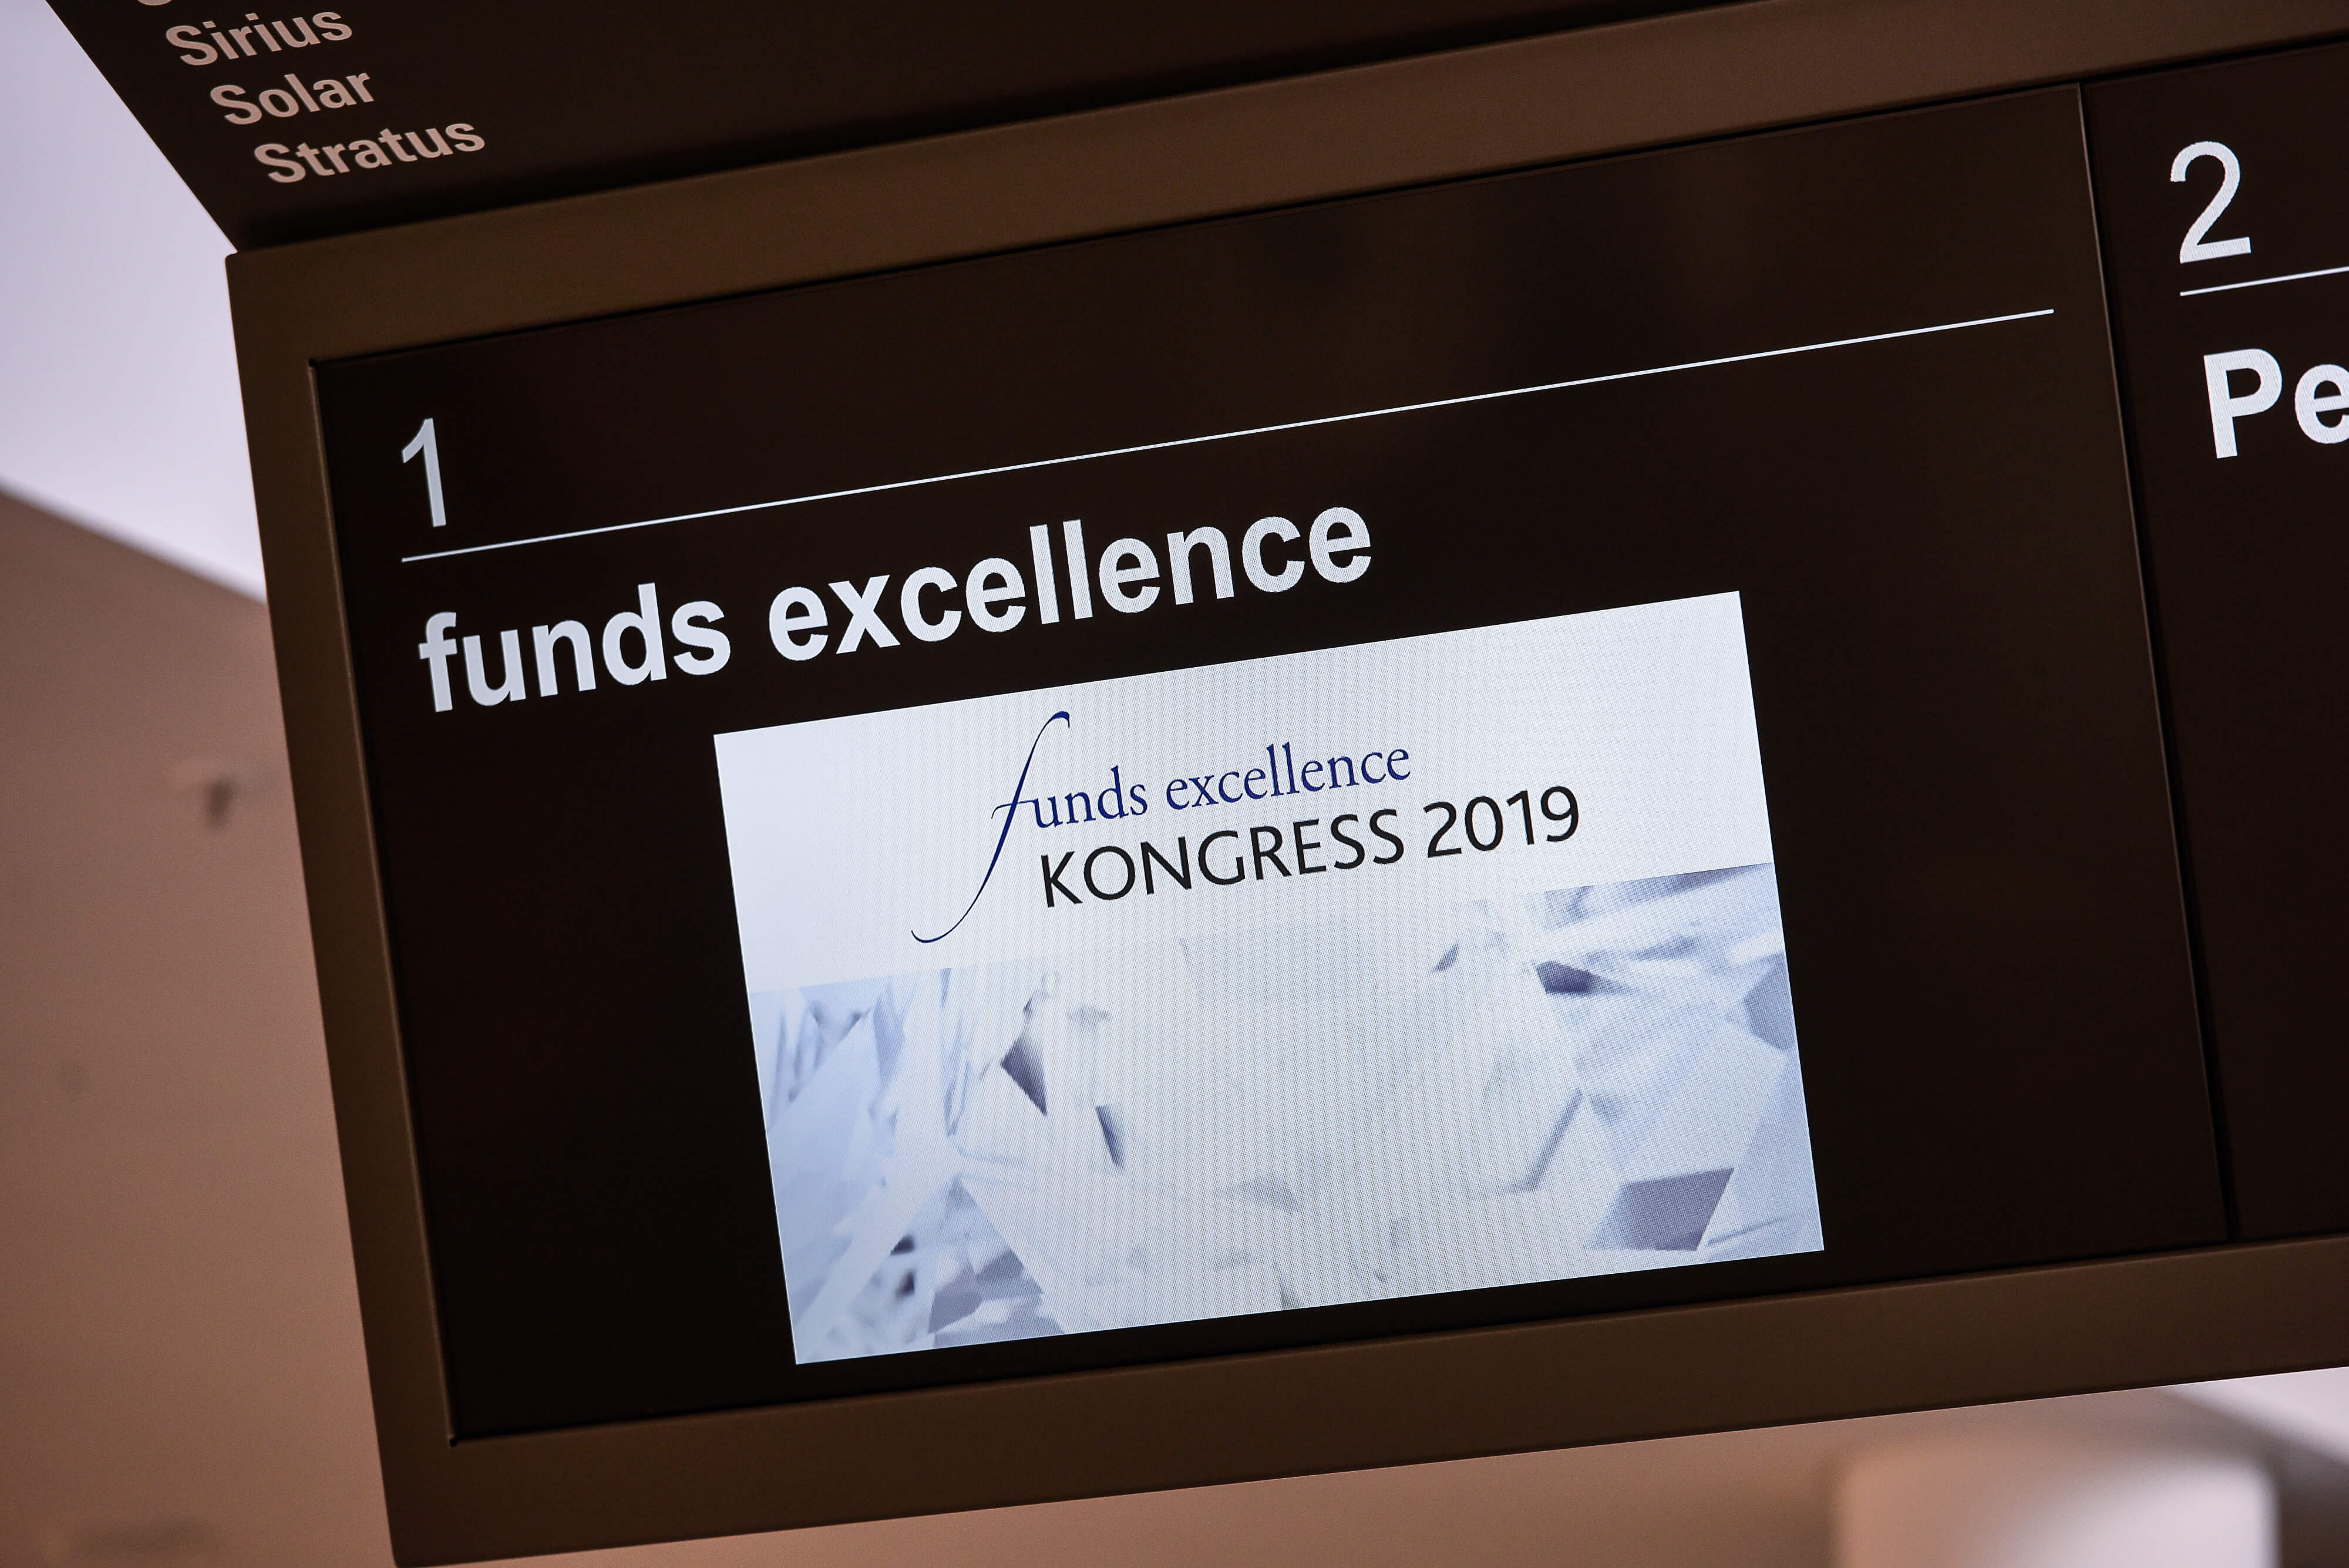 190625 funds excellence 007